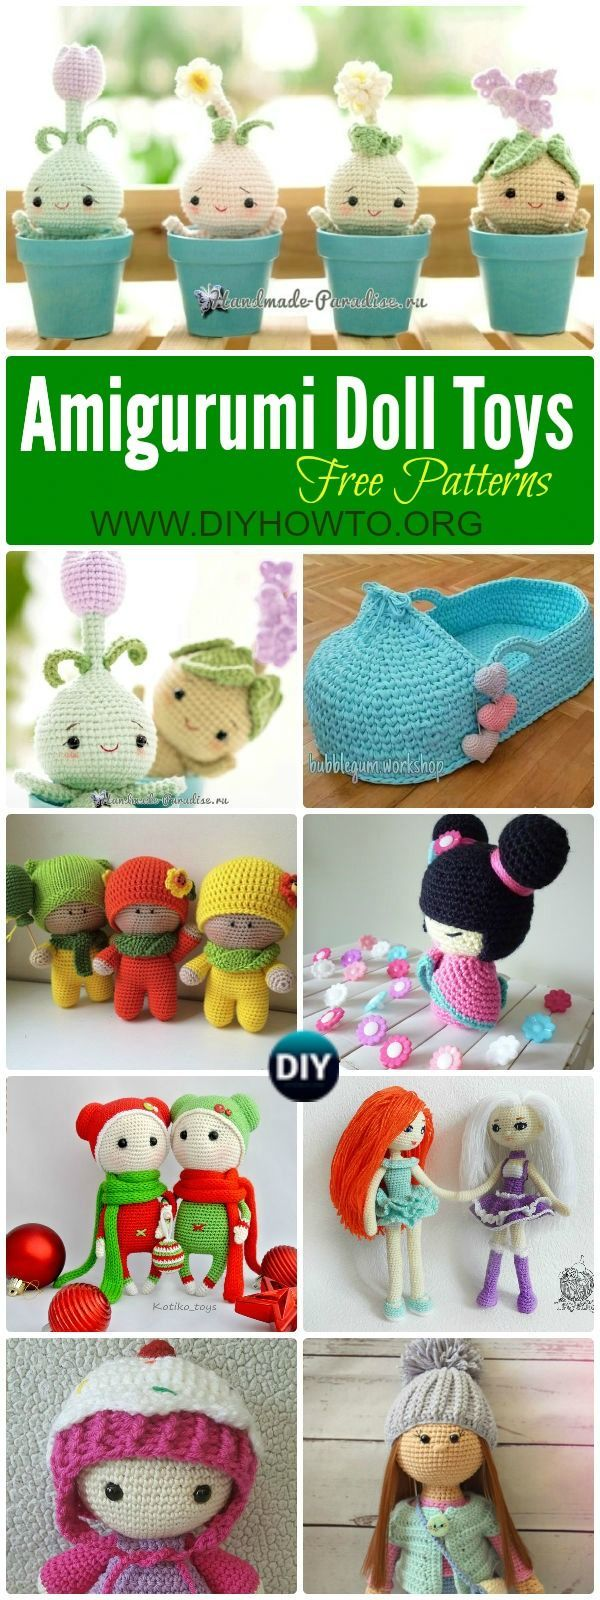 Collection of Crochet Doll Toys Free Patterns: Crochet Dolls, Crochet Toys. Amigurumi Dolls Free Patterns, Crochet Doll Carrier via @diyhowto